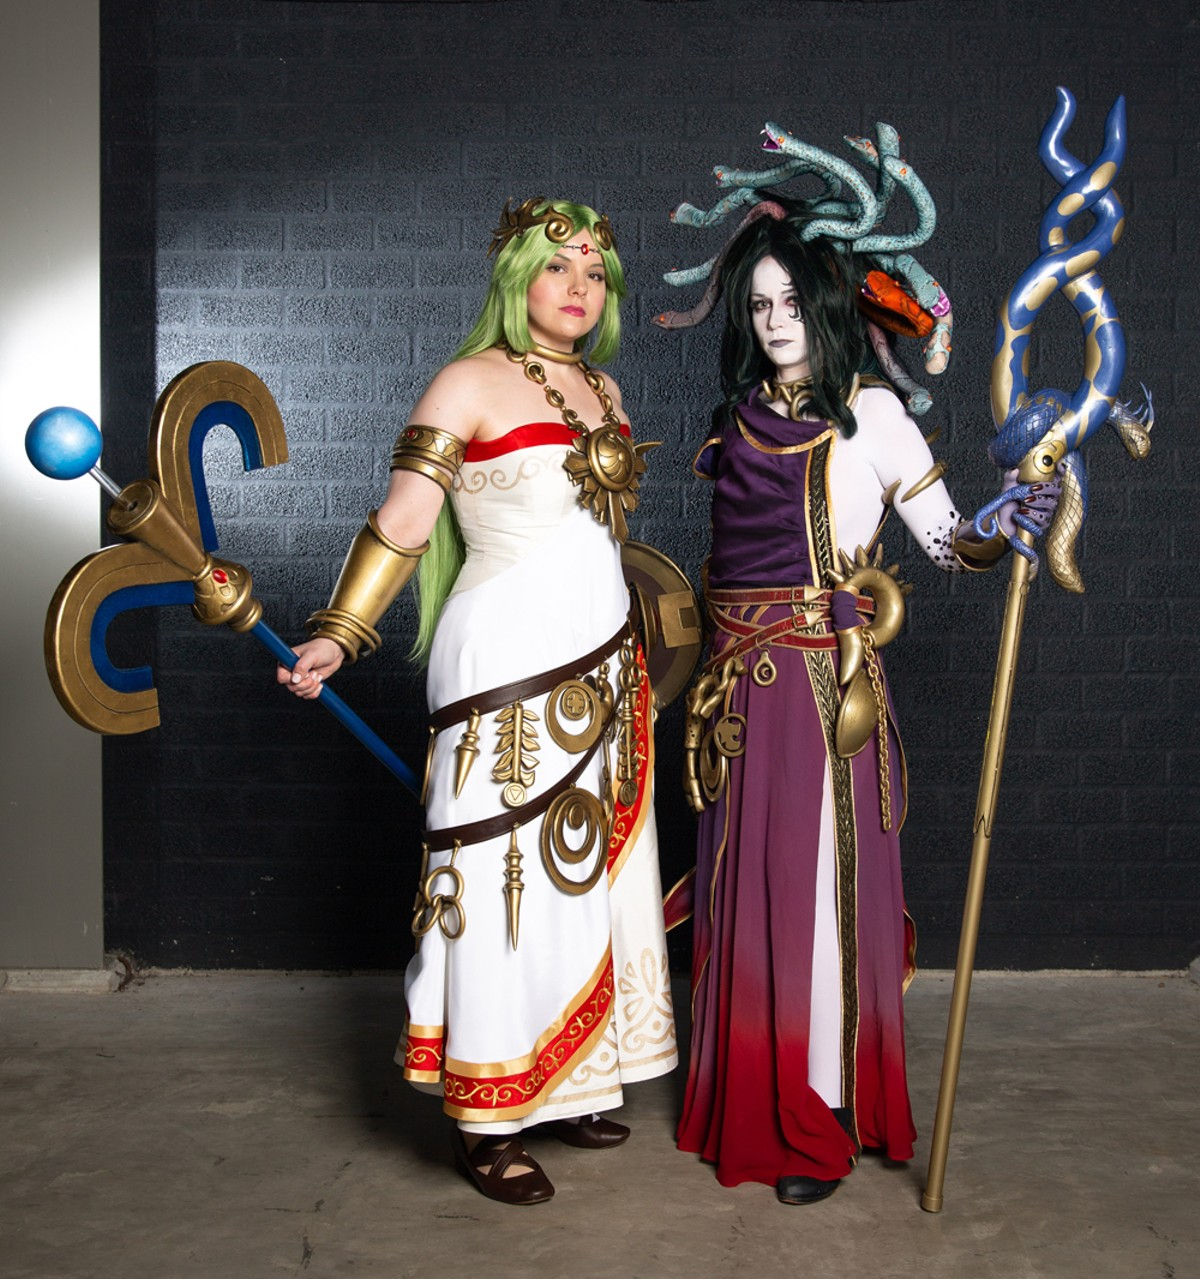 Award-winning cosplay team Sparkle Motion's Sumikins and Rynn Cosplay dressed as Palutena and Medusa from Kid Icarus Uprising.